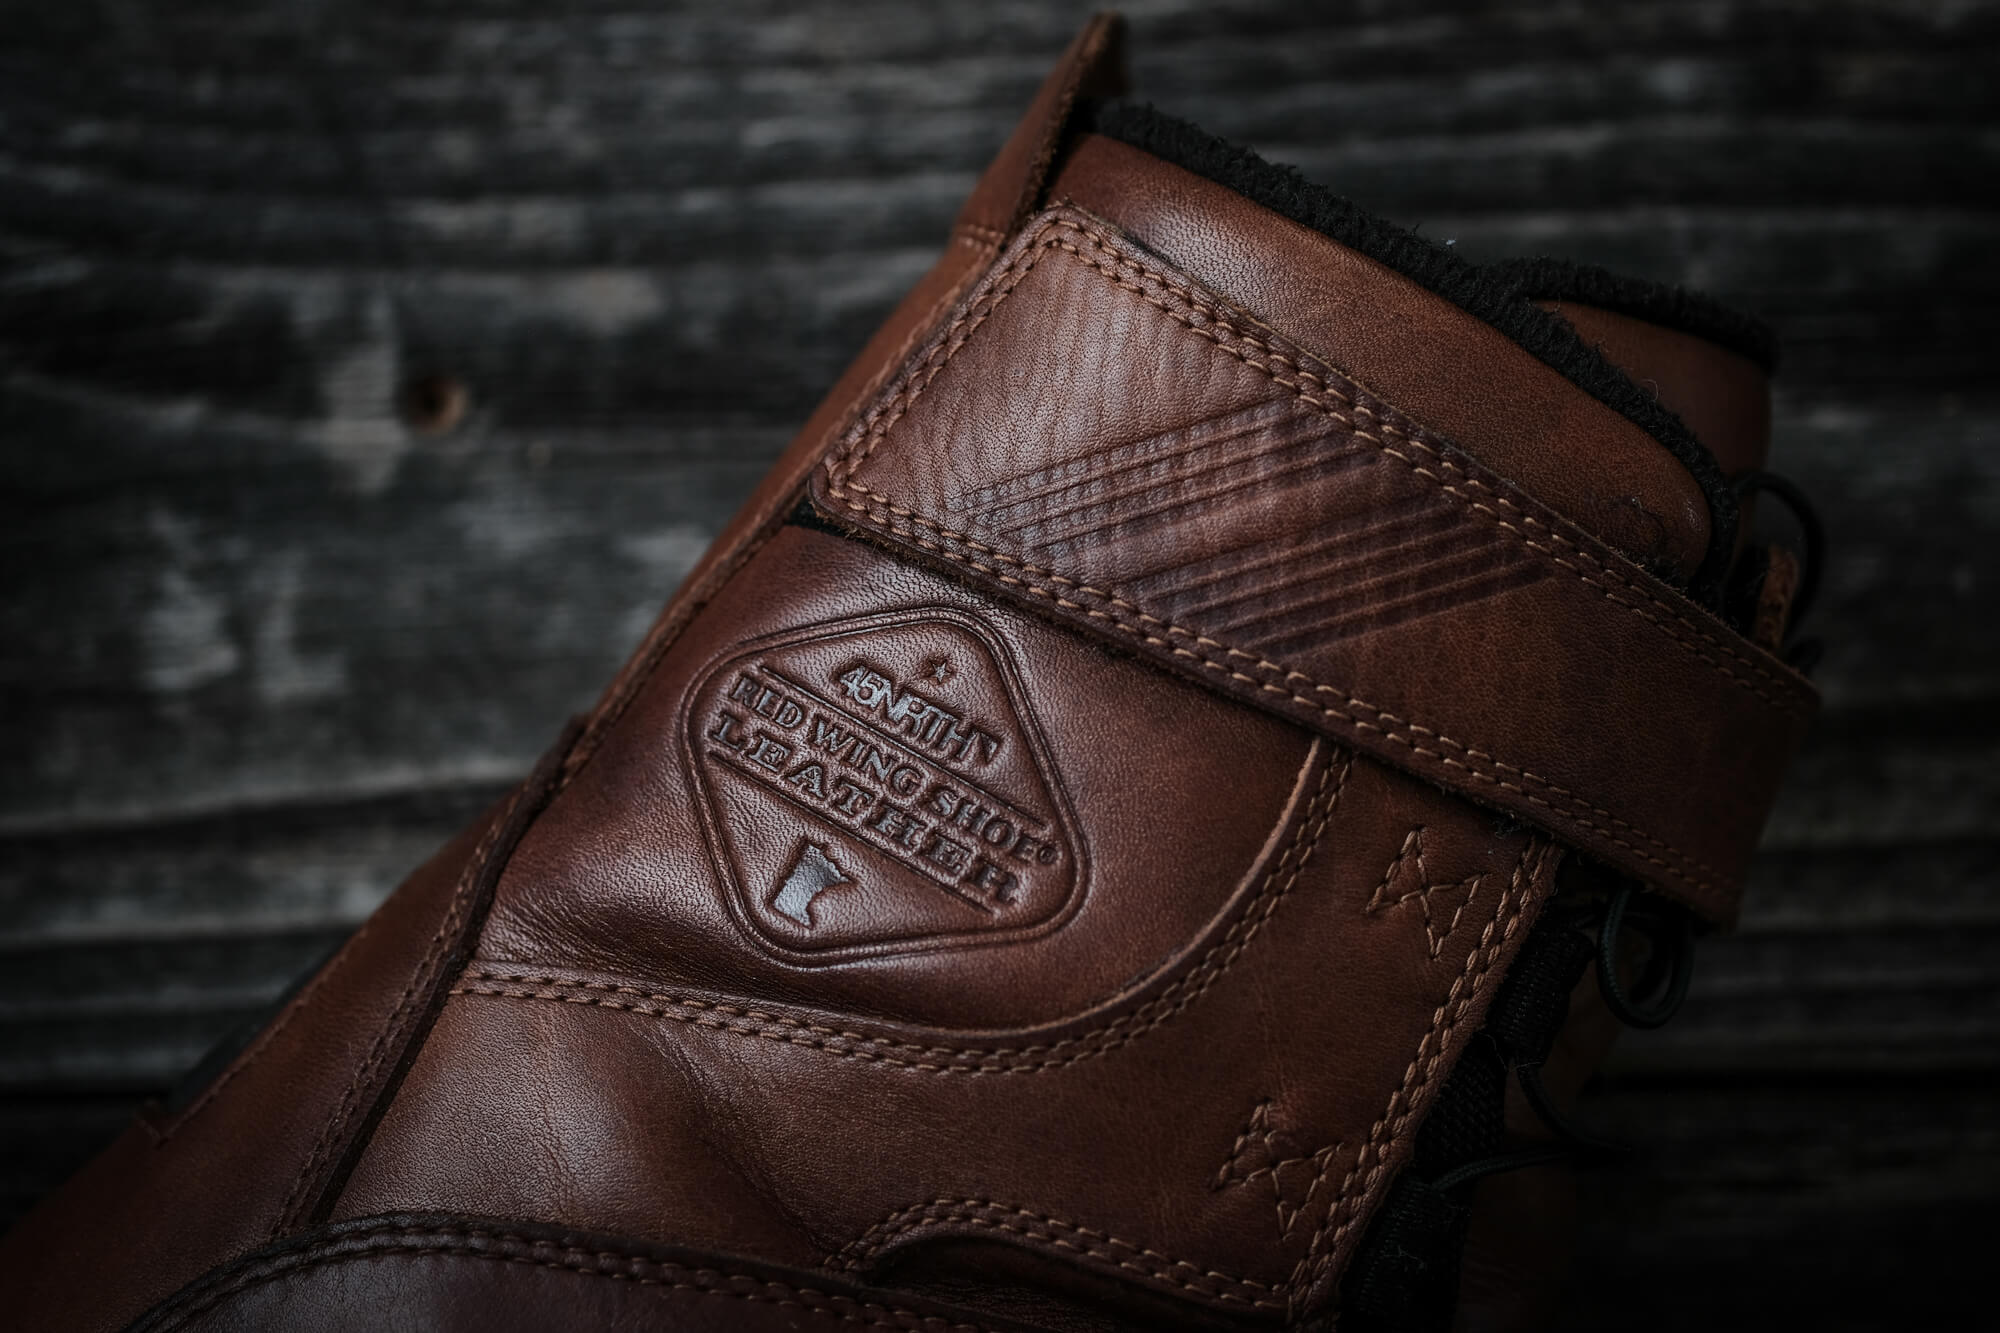 Closeup of 45NRTH Red Wing Shoe Leather logo embedded in leather of conditioned boot